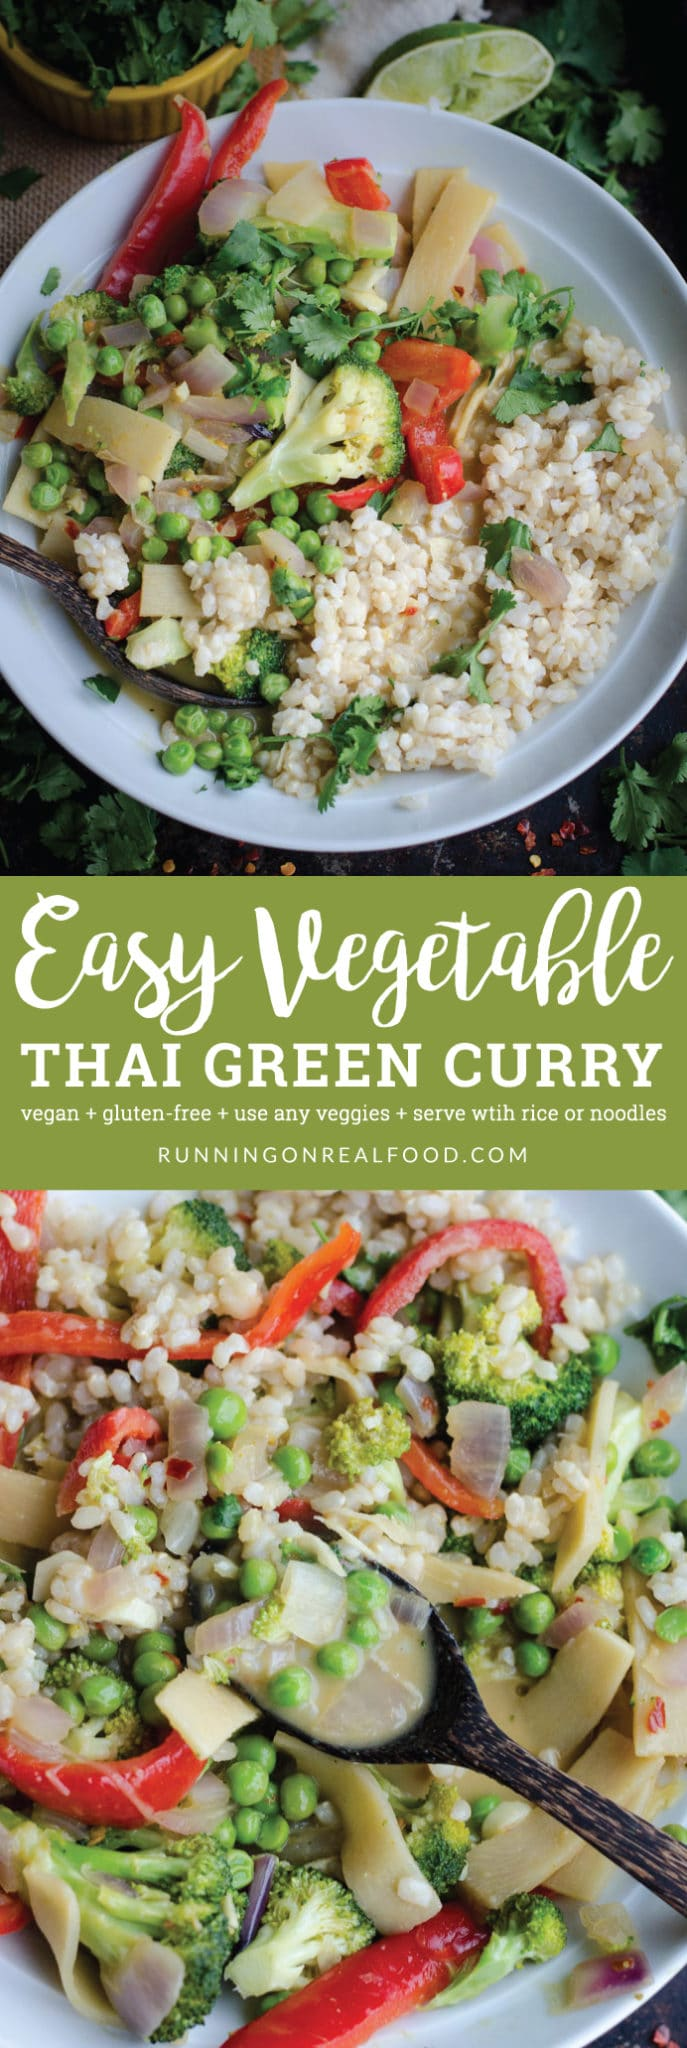 Easy Vegetable Thai Green Curry | vegan and gluten-free